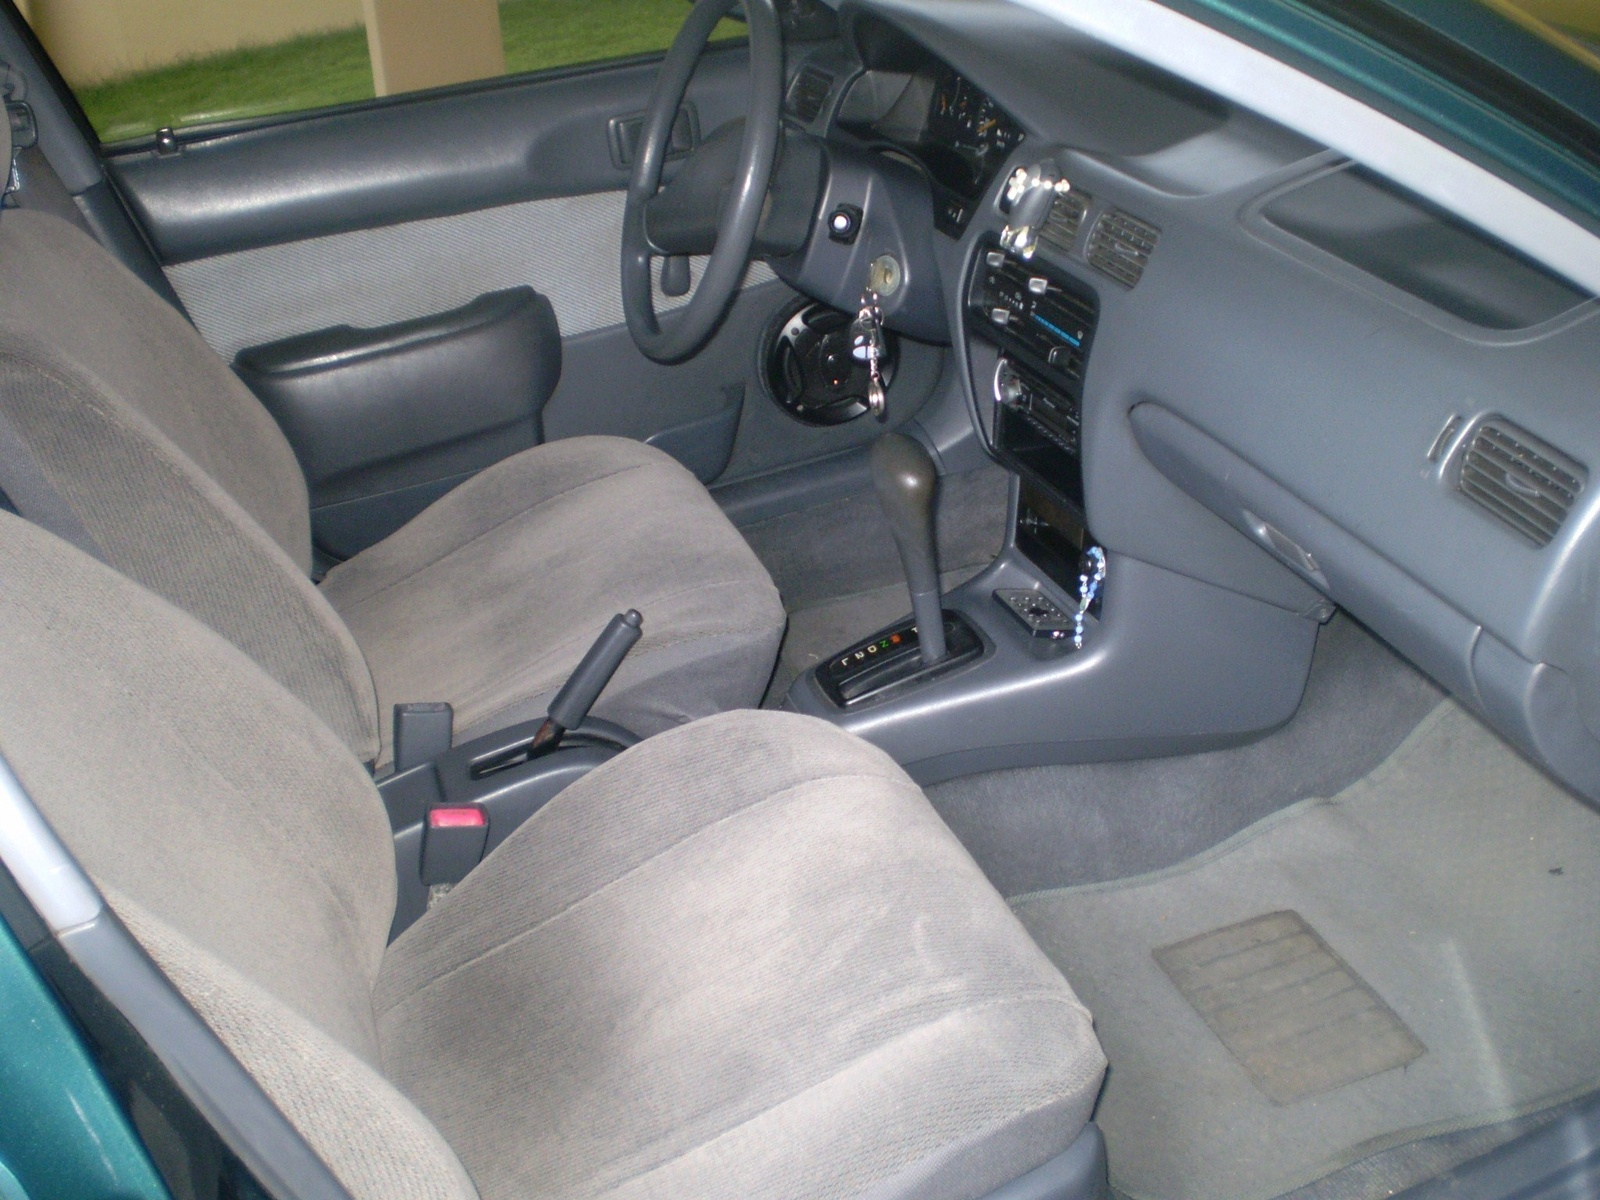 1996 Toyota Tercel 4 Dr DX Sedan picture, interior